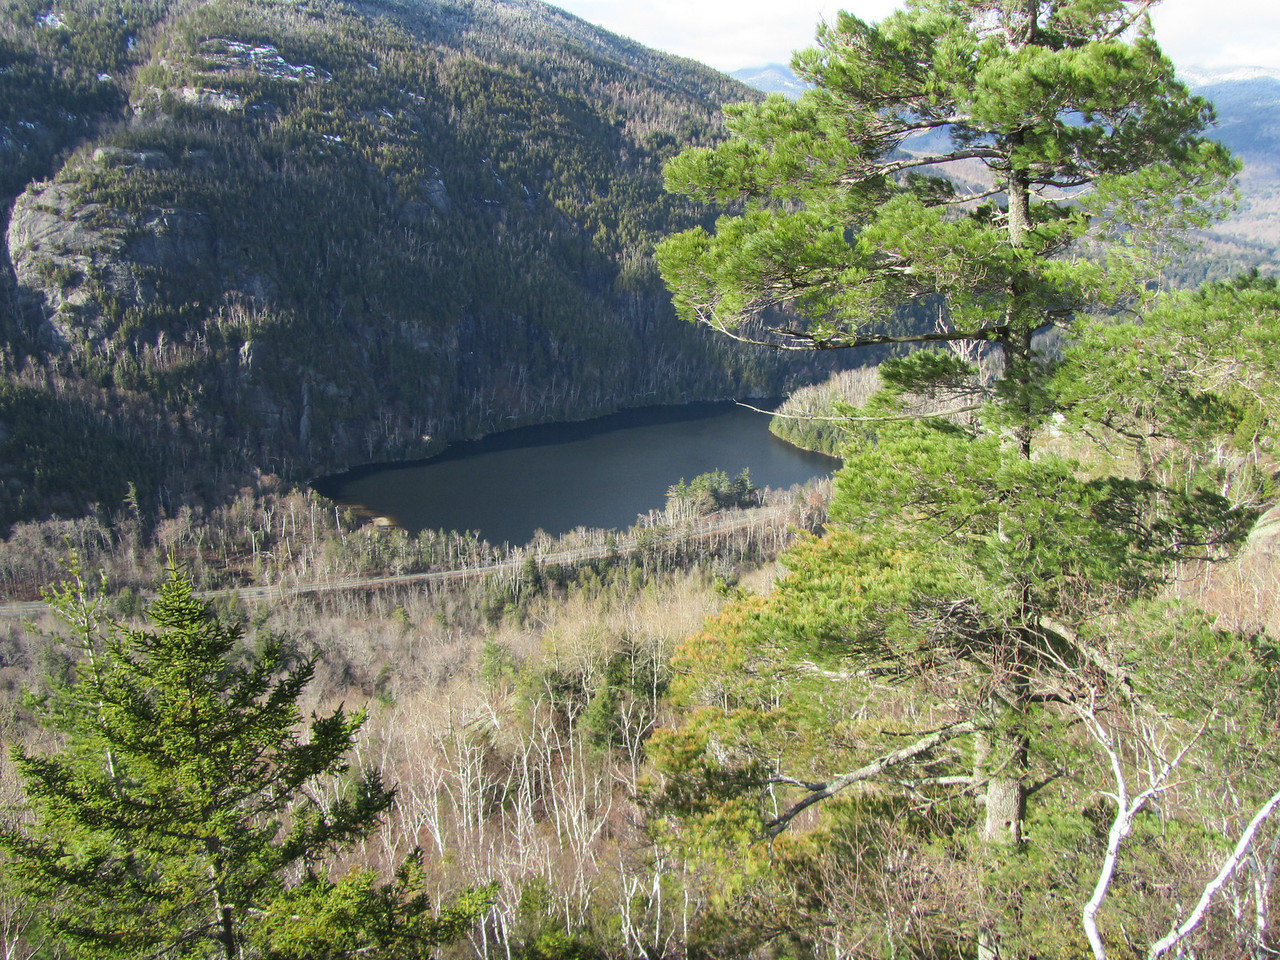 Chapel pond from the first rock face. Route 73 is in the foreground.